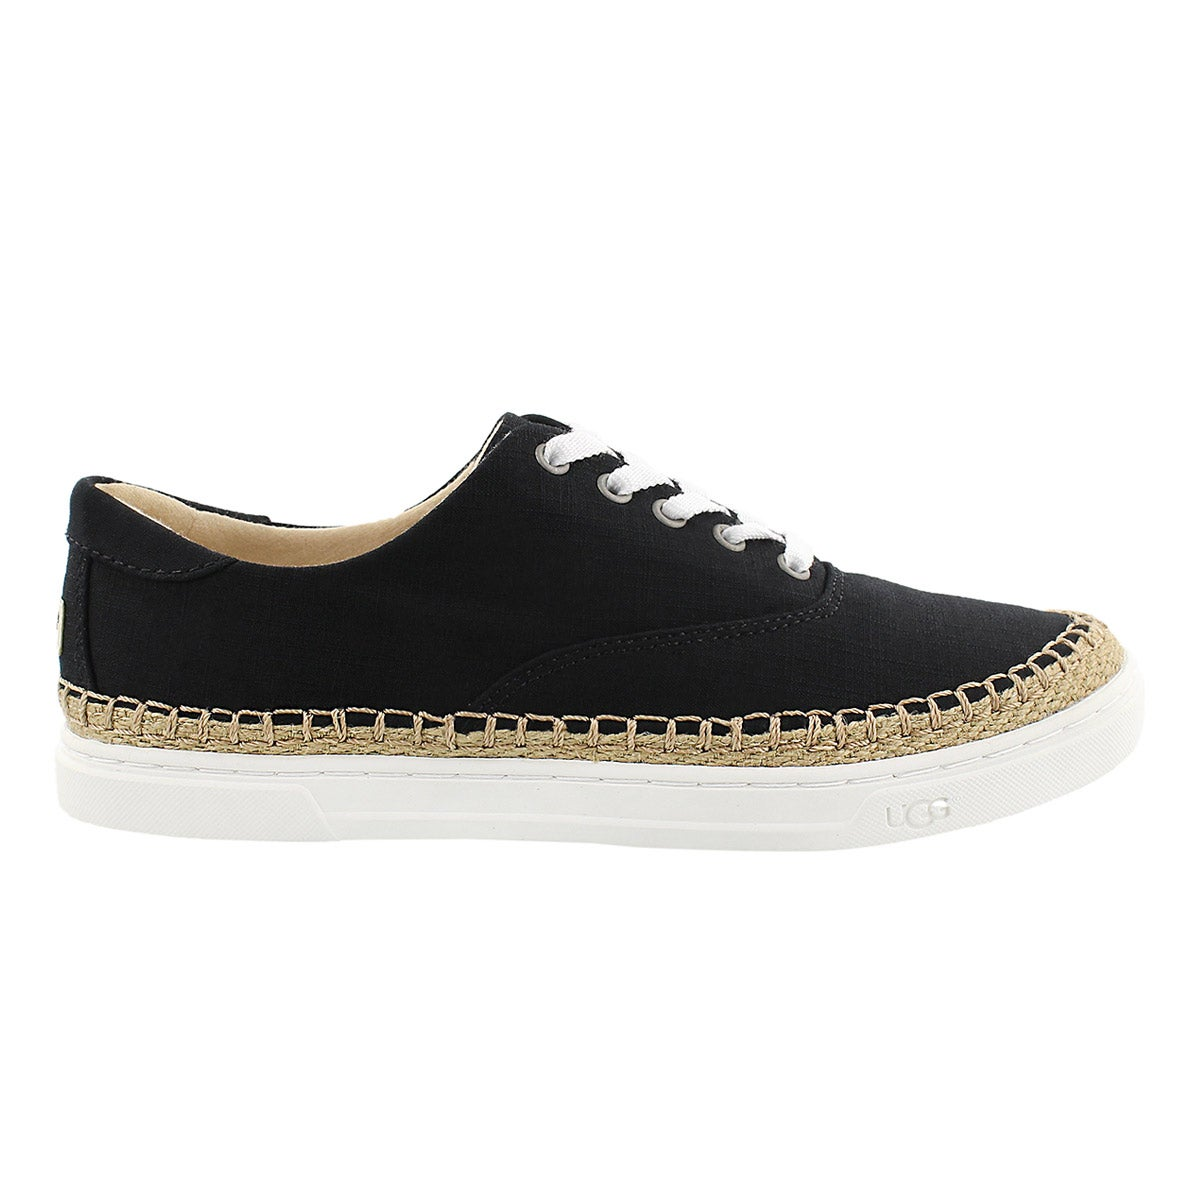 Lds Eyan II black lace up sneaker